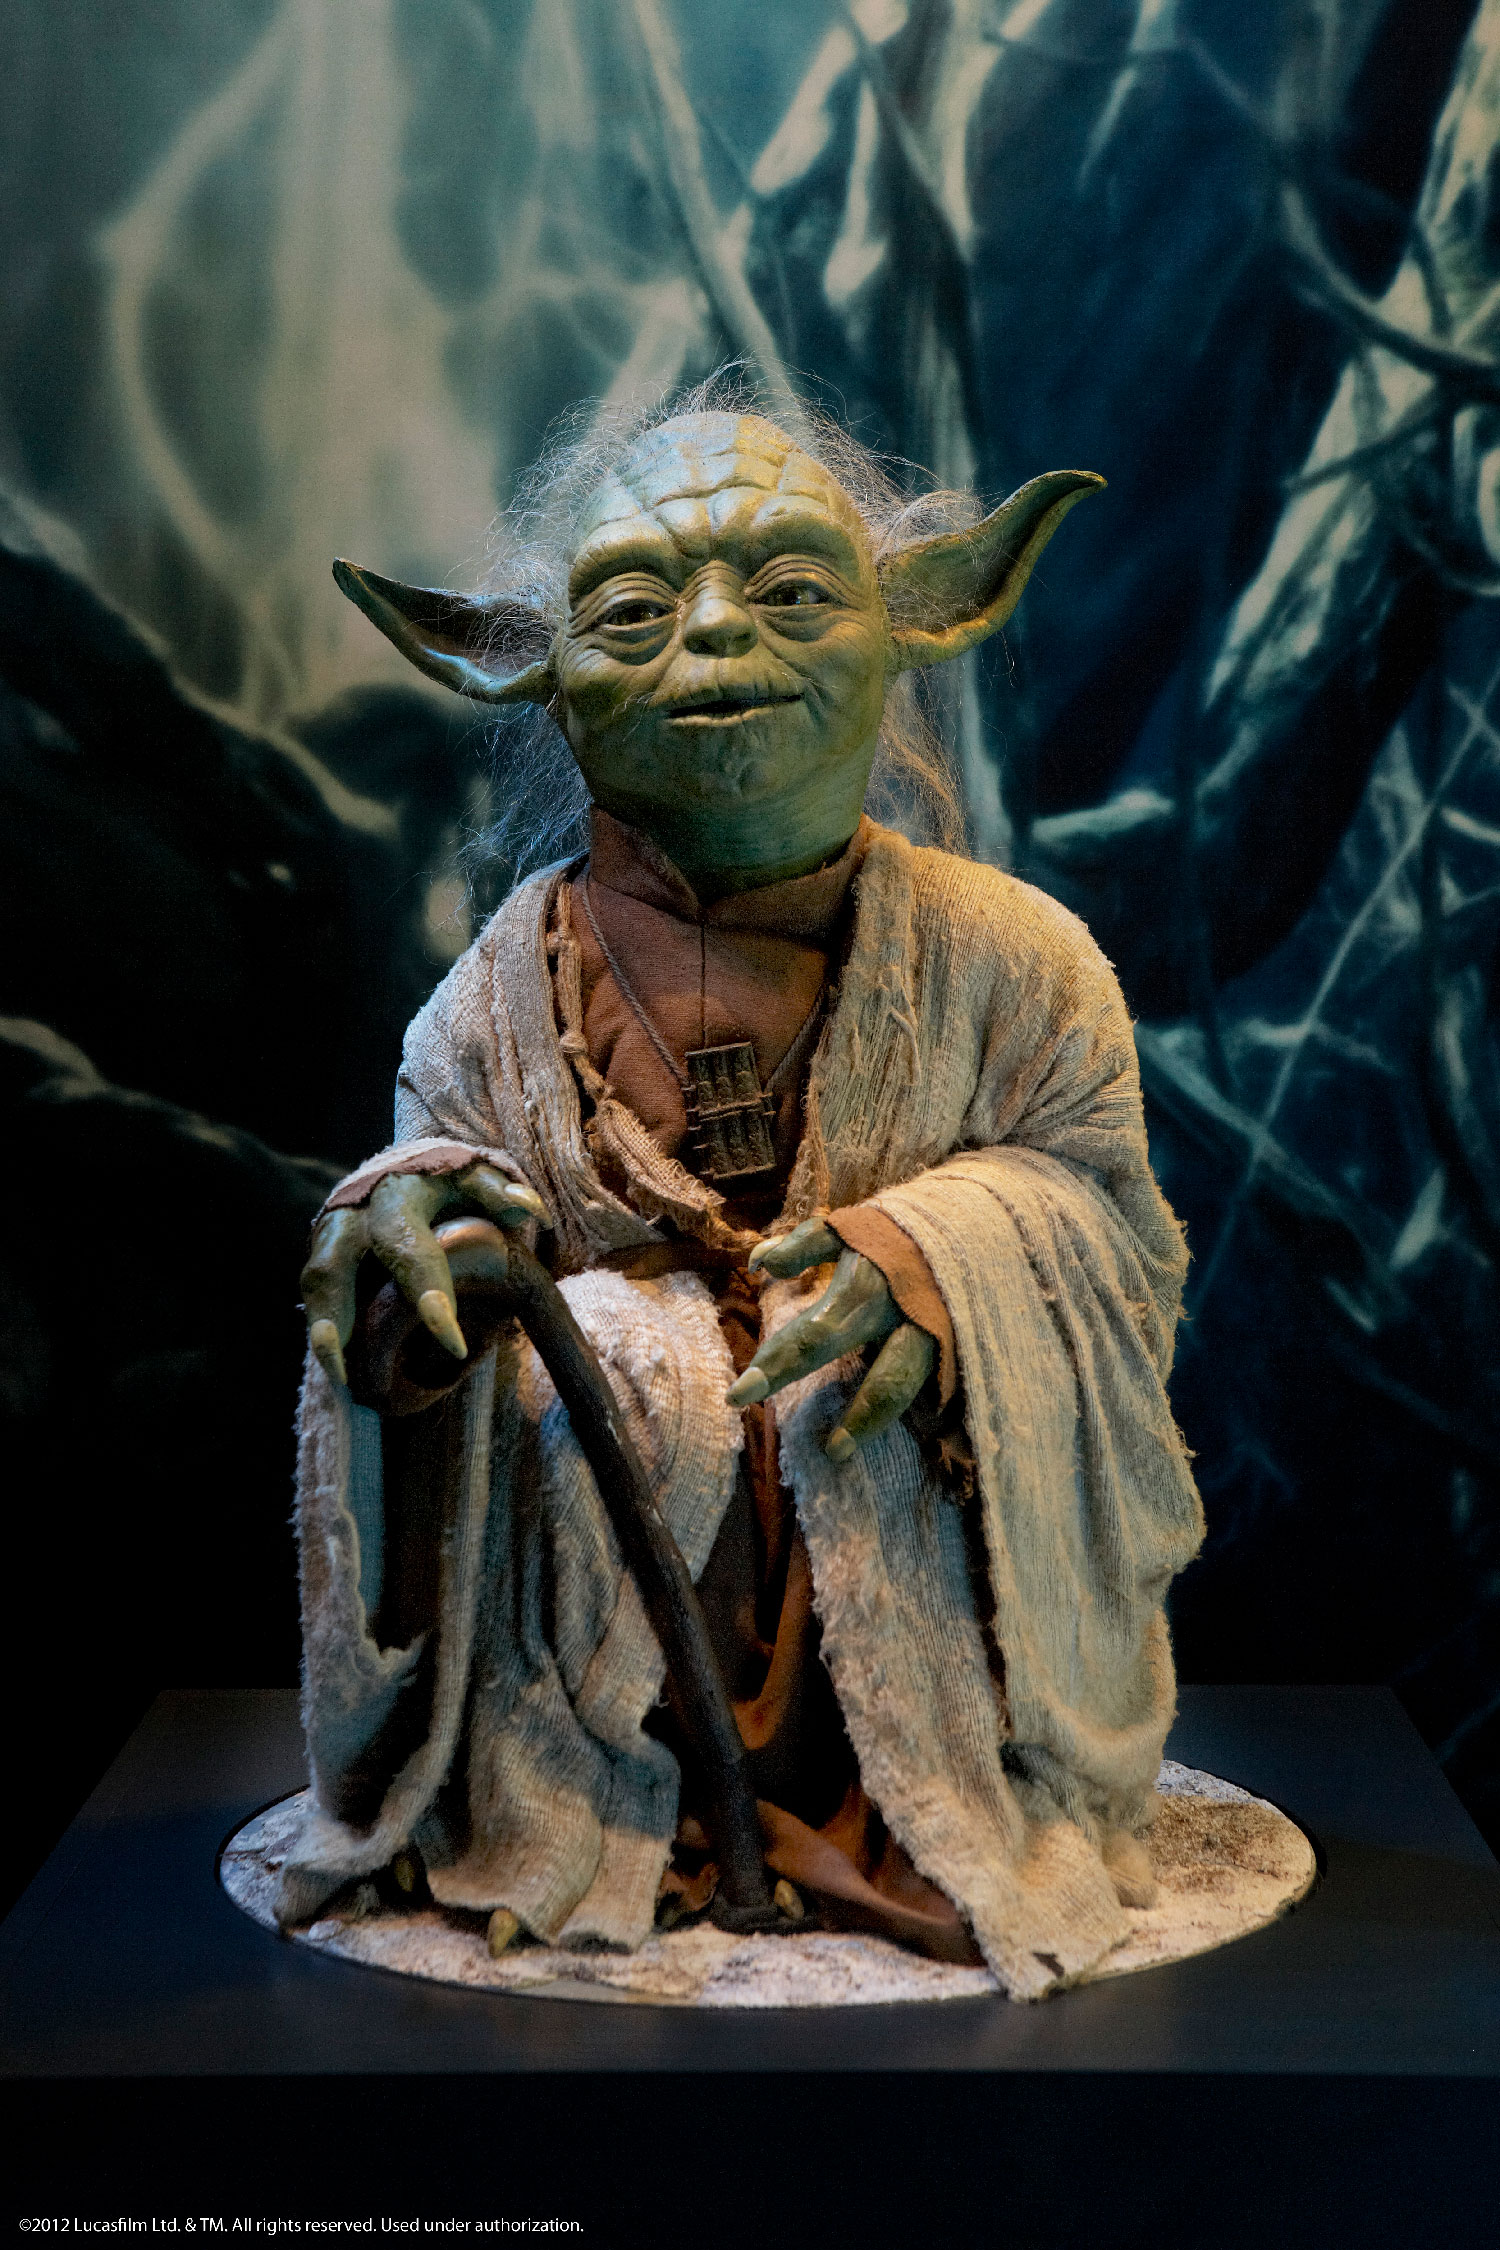 Star-Wars-Identities-exhibit---Yoda